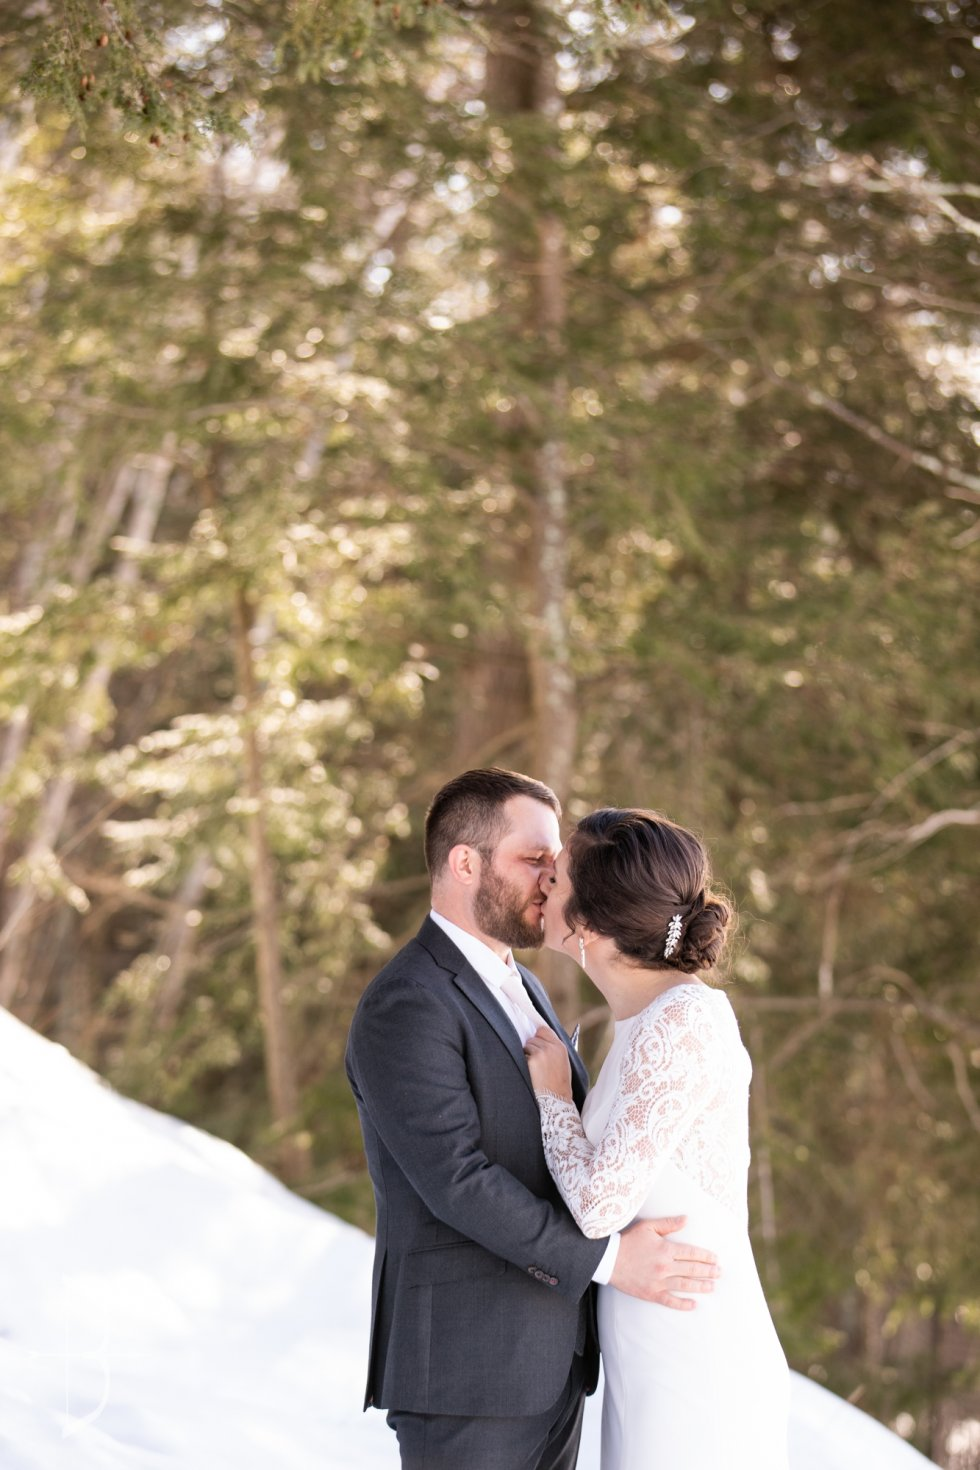 Small Wedding In Northwoods Wisconsin Whether you're looking for a traditional hotel wedding, a rustic outdoor wedding or something a bit smaller, the dells. small wedding in northwoods wisconsin